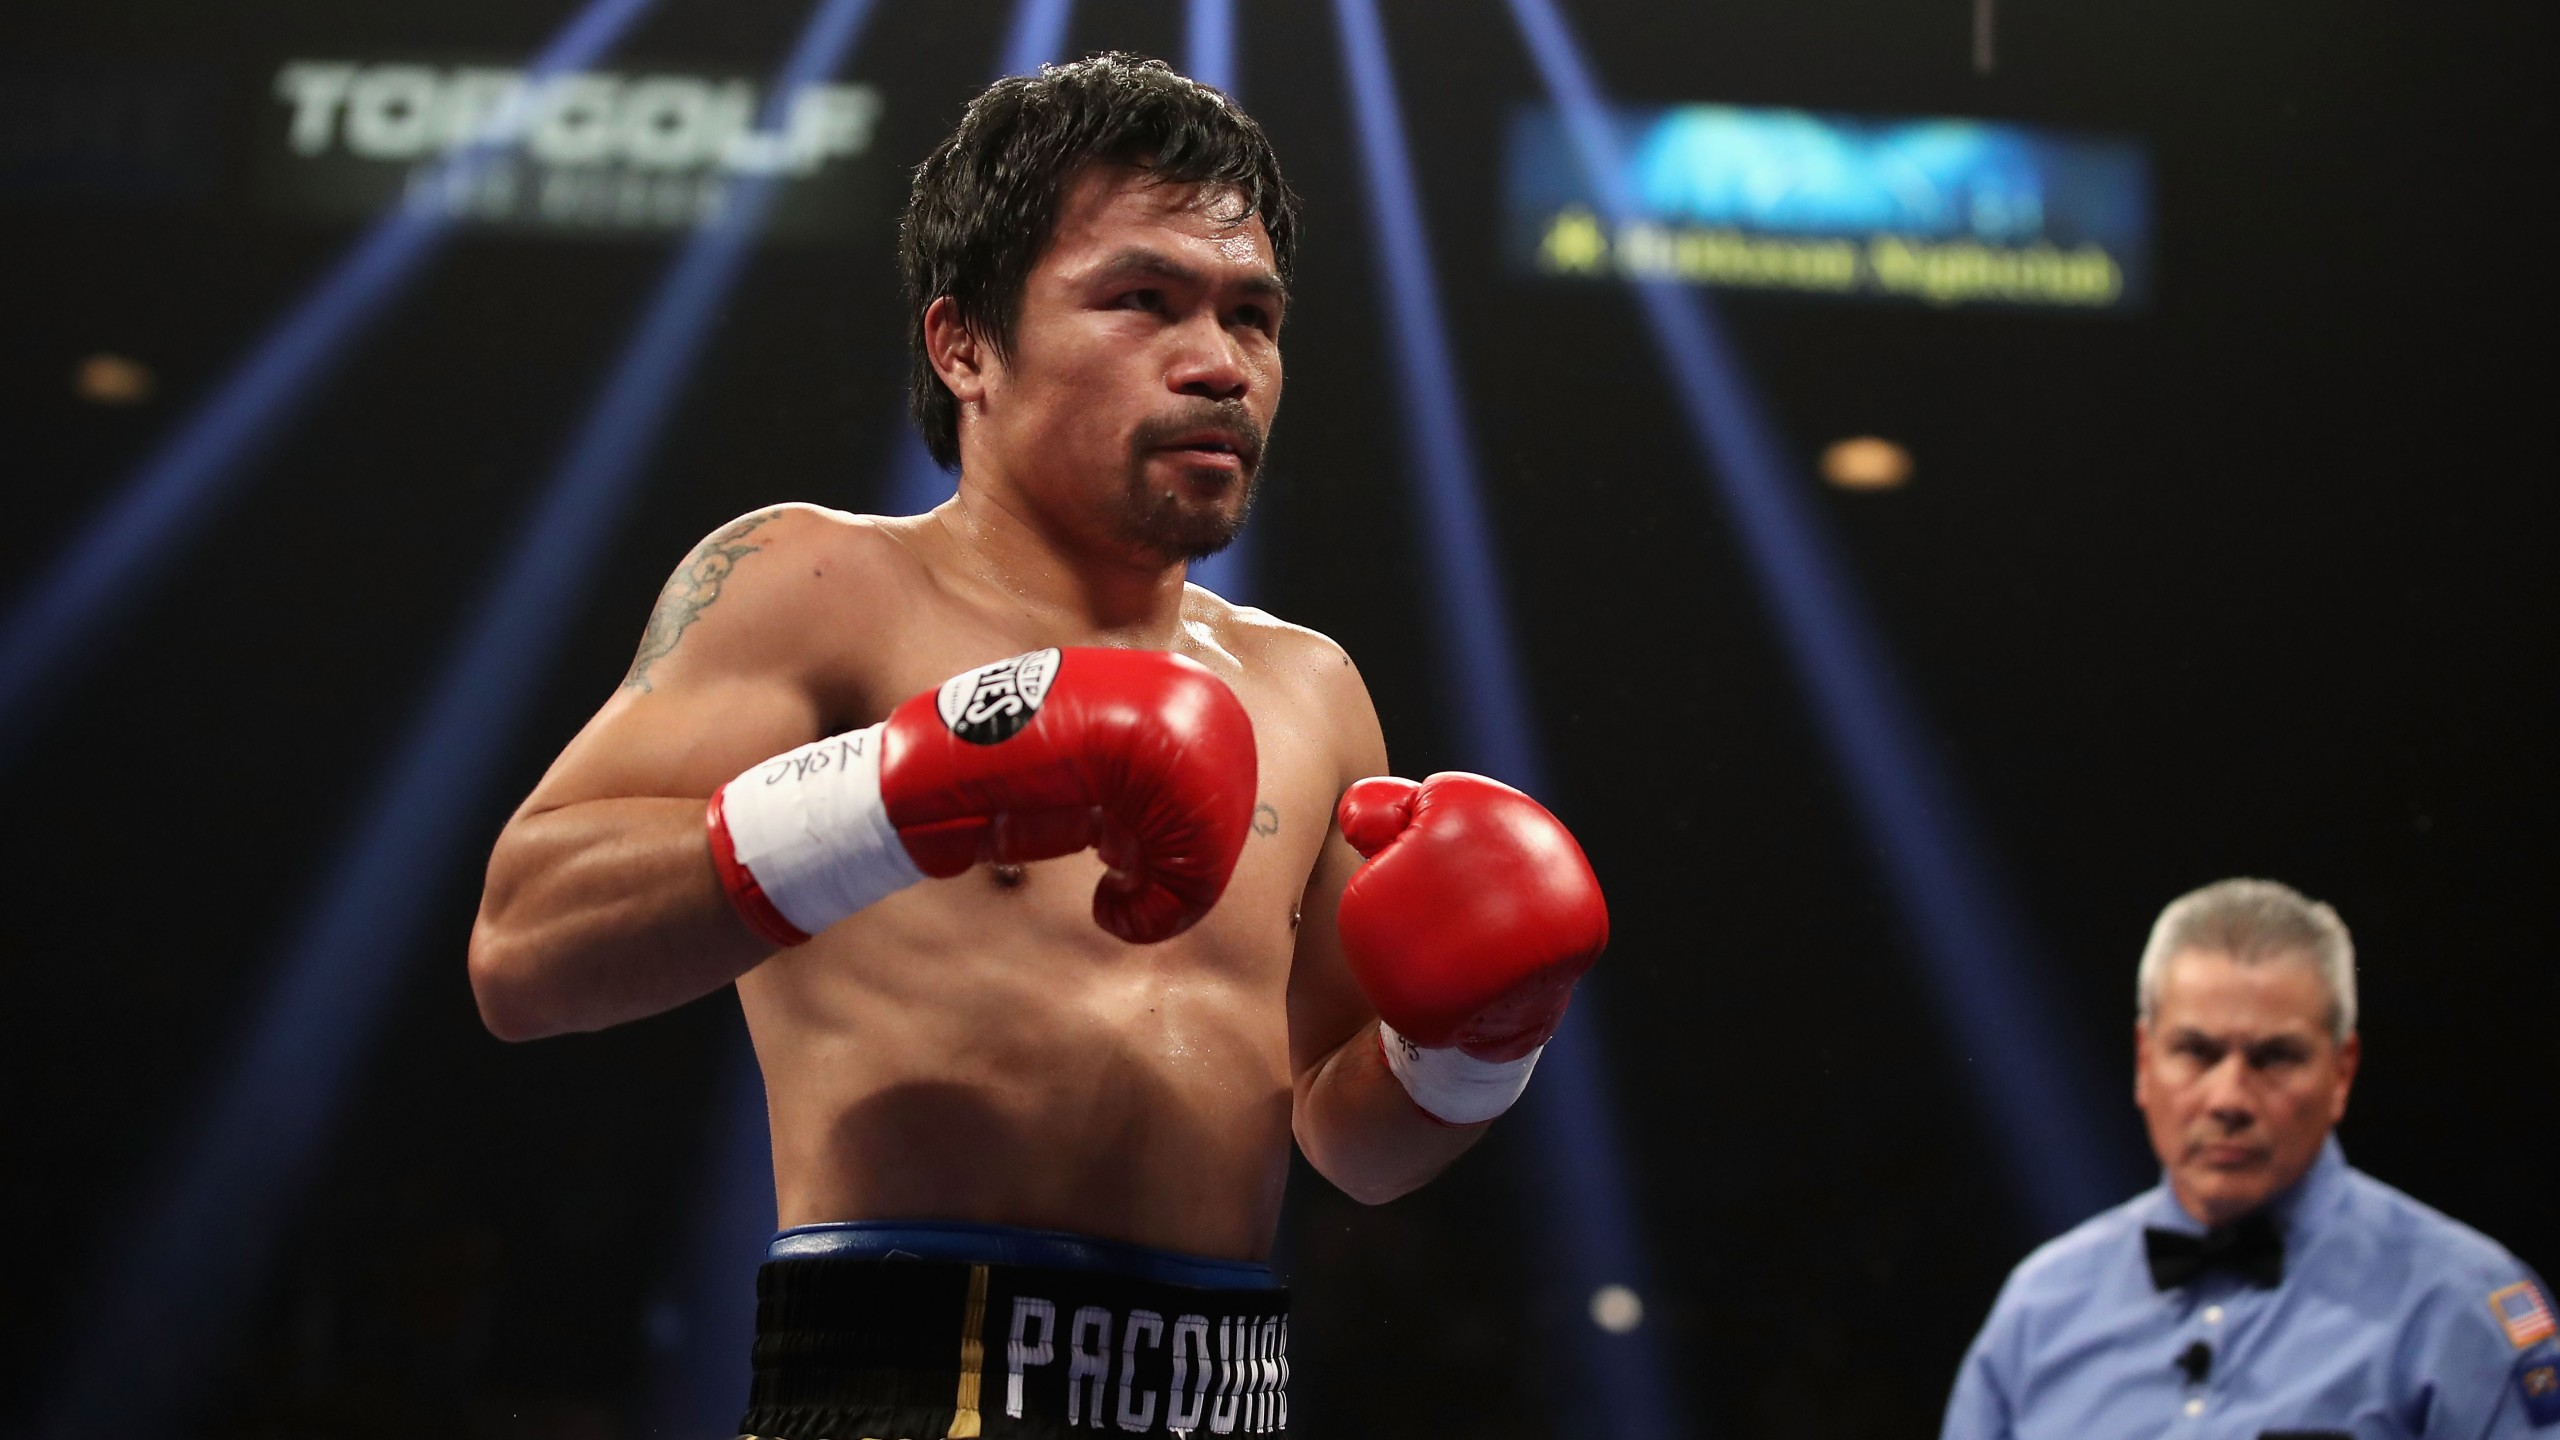 Manny Pacquiao in the ring during the WBA welterweight championship against Adrien Broner at MGM Grand Garden Arena in Las Vegas on Jan. 19, 2019. (Credit: Christian Petersen/Getty Images)